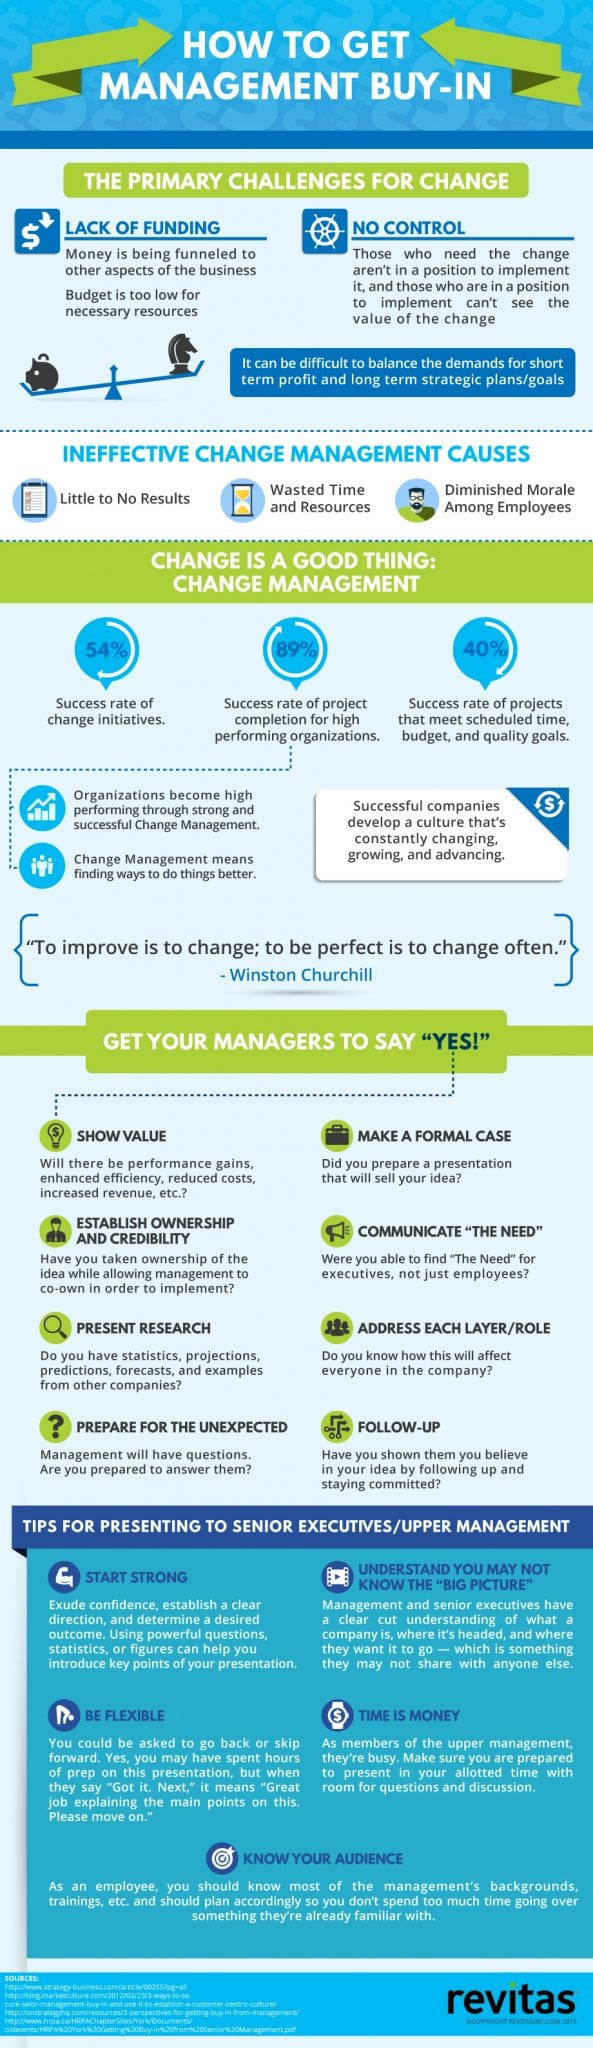 Photo of How to Get Management Buy-In [INFOGRAPHIC]